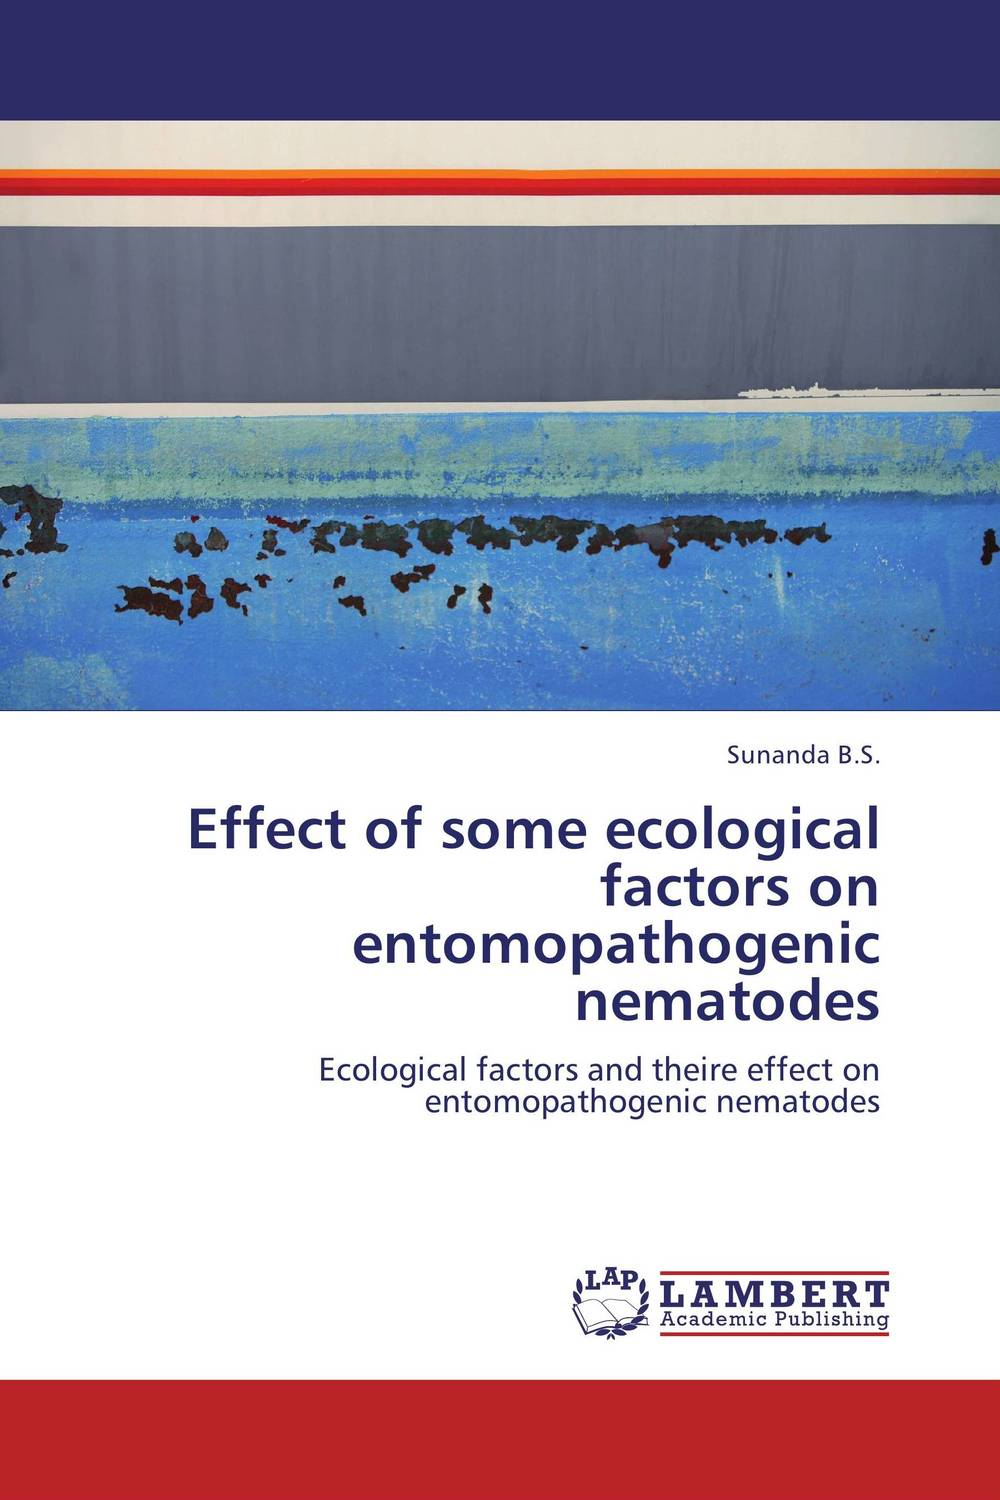 Effect of some ecological factors on entomopathogenic nematodes